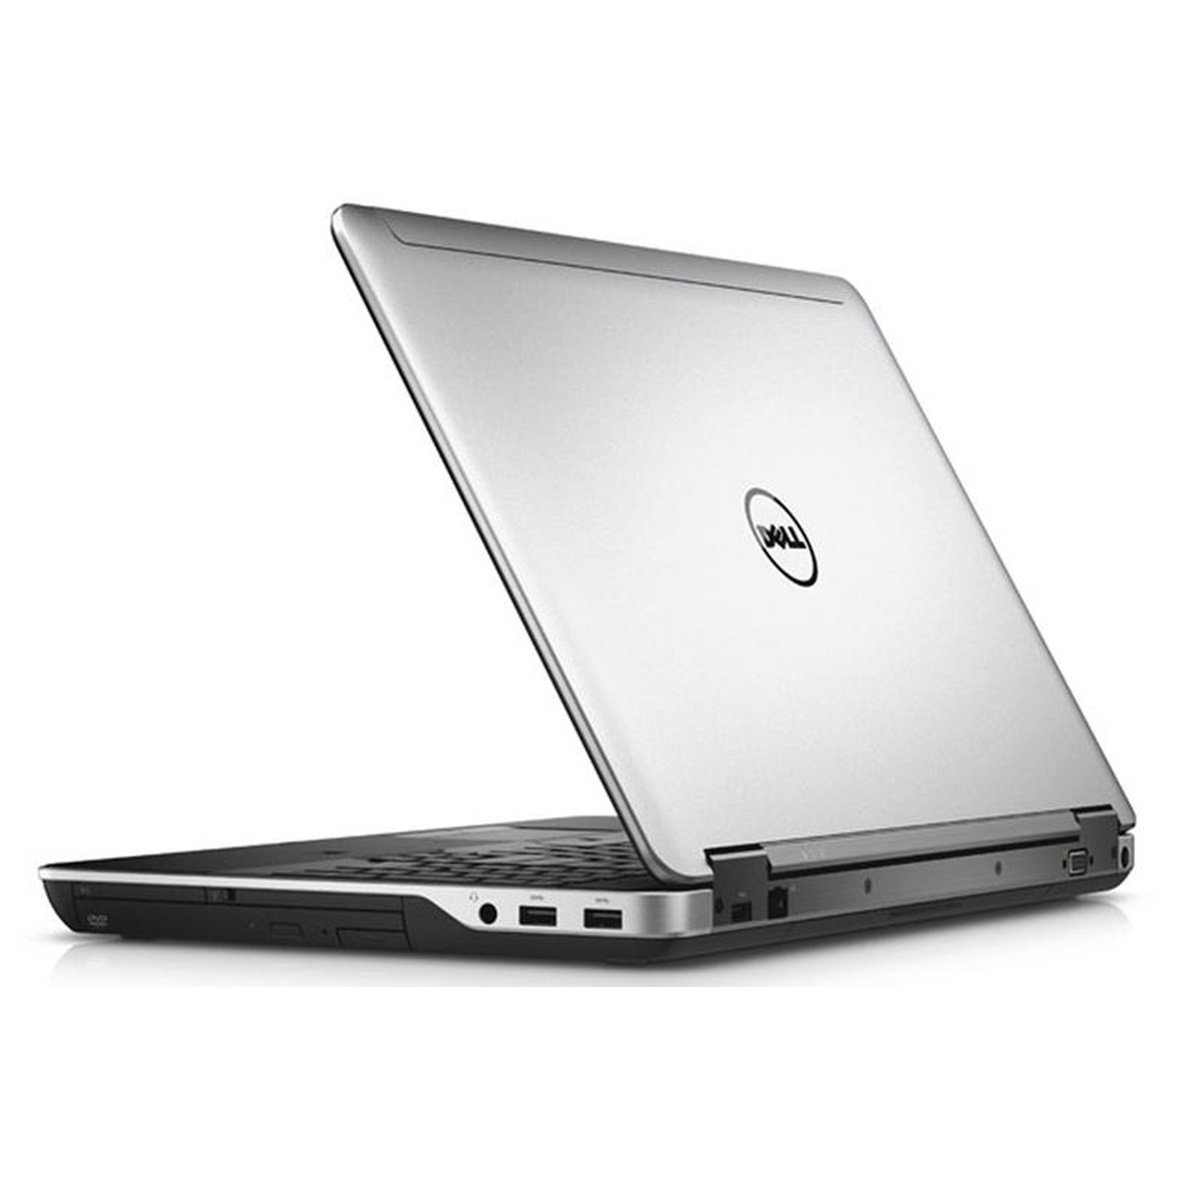 Amazon.com: Dell Laptop Latitude E6440 14